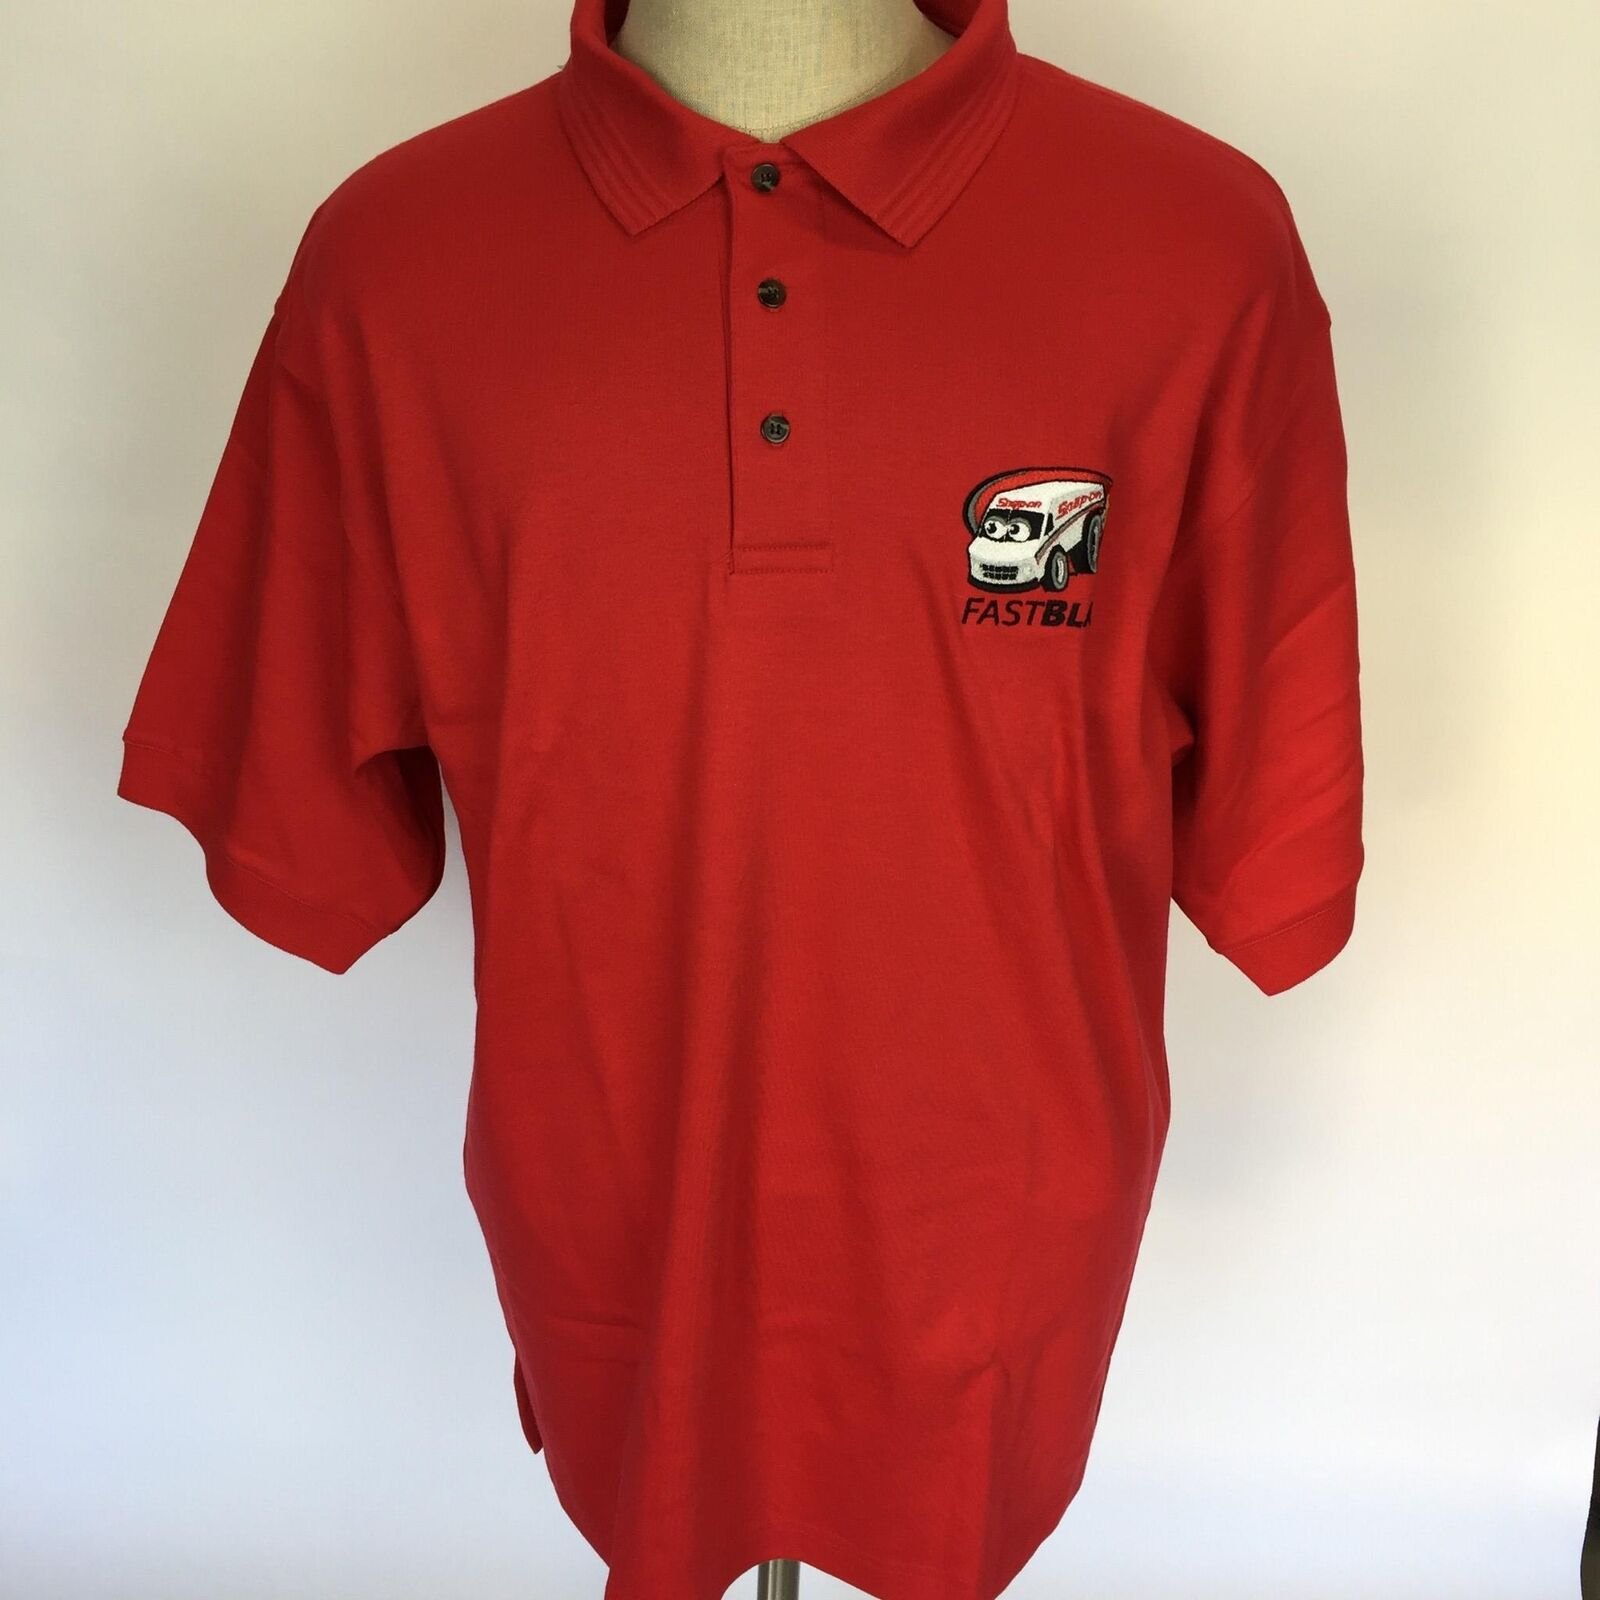 NWT Swingter Snap On Men's Fast Bus Red Polo Shirt XL Mechanic Tools Garage